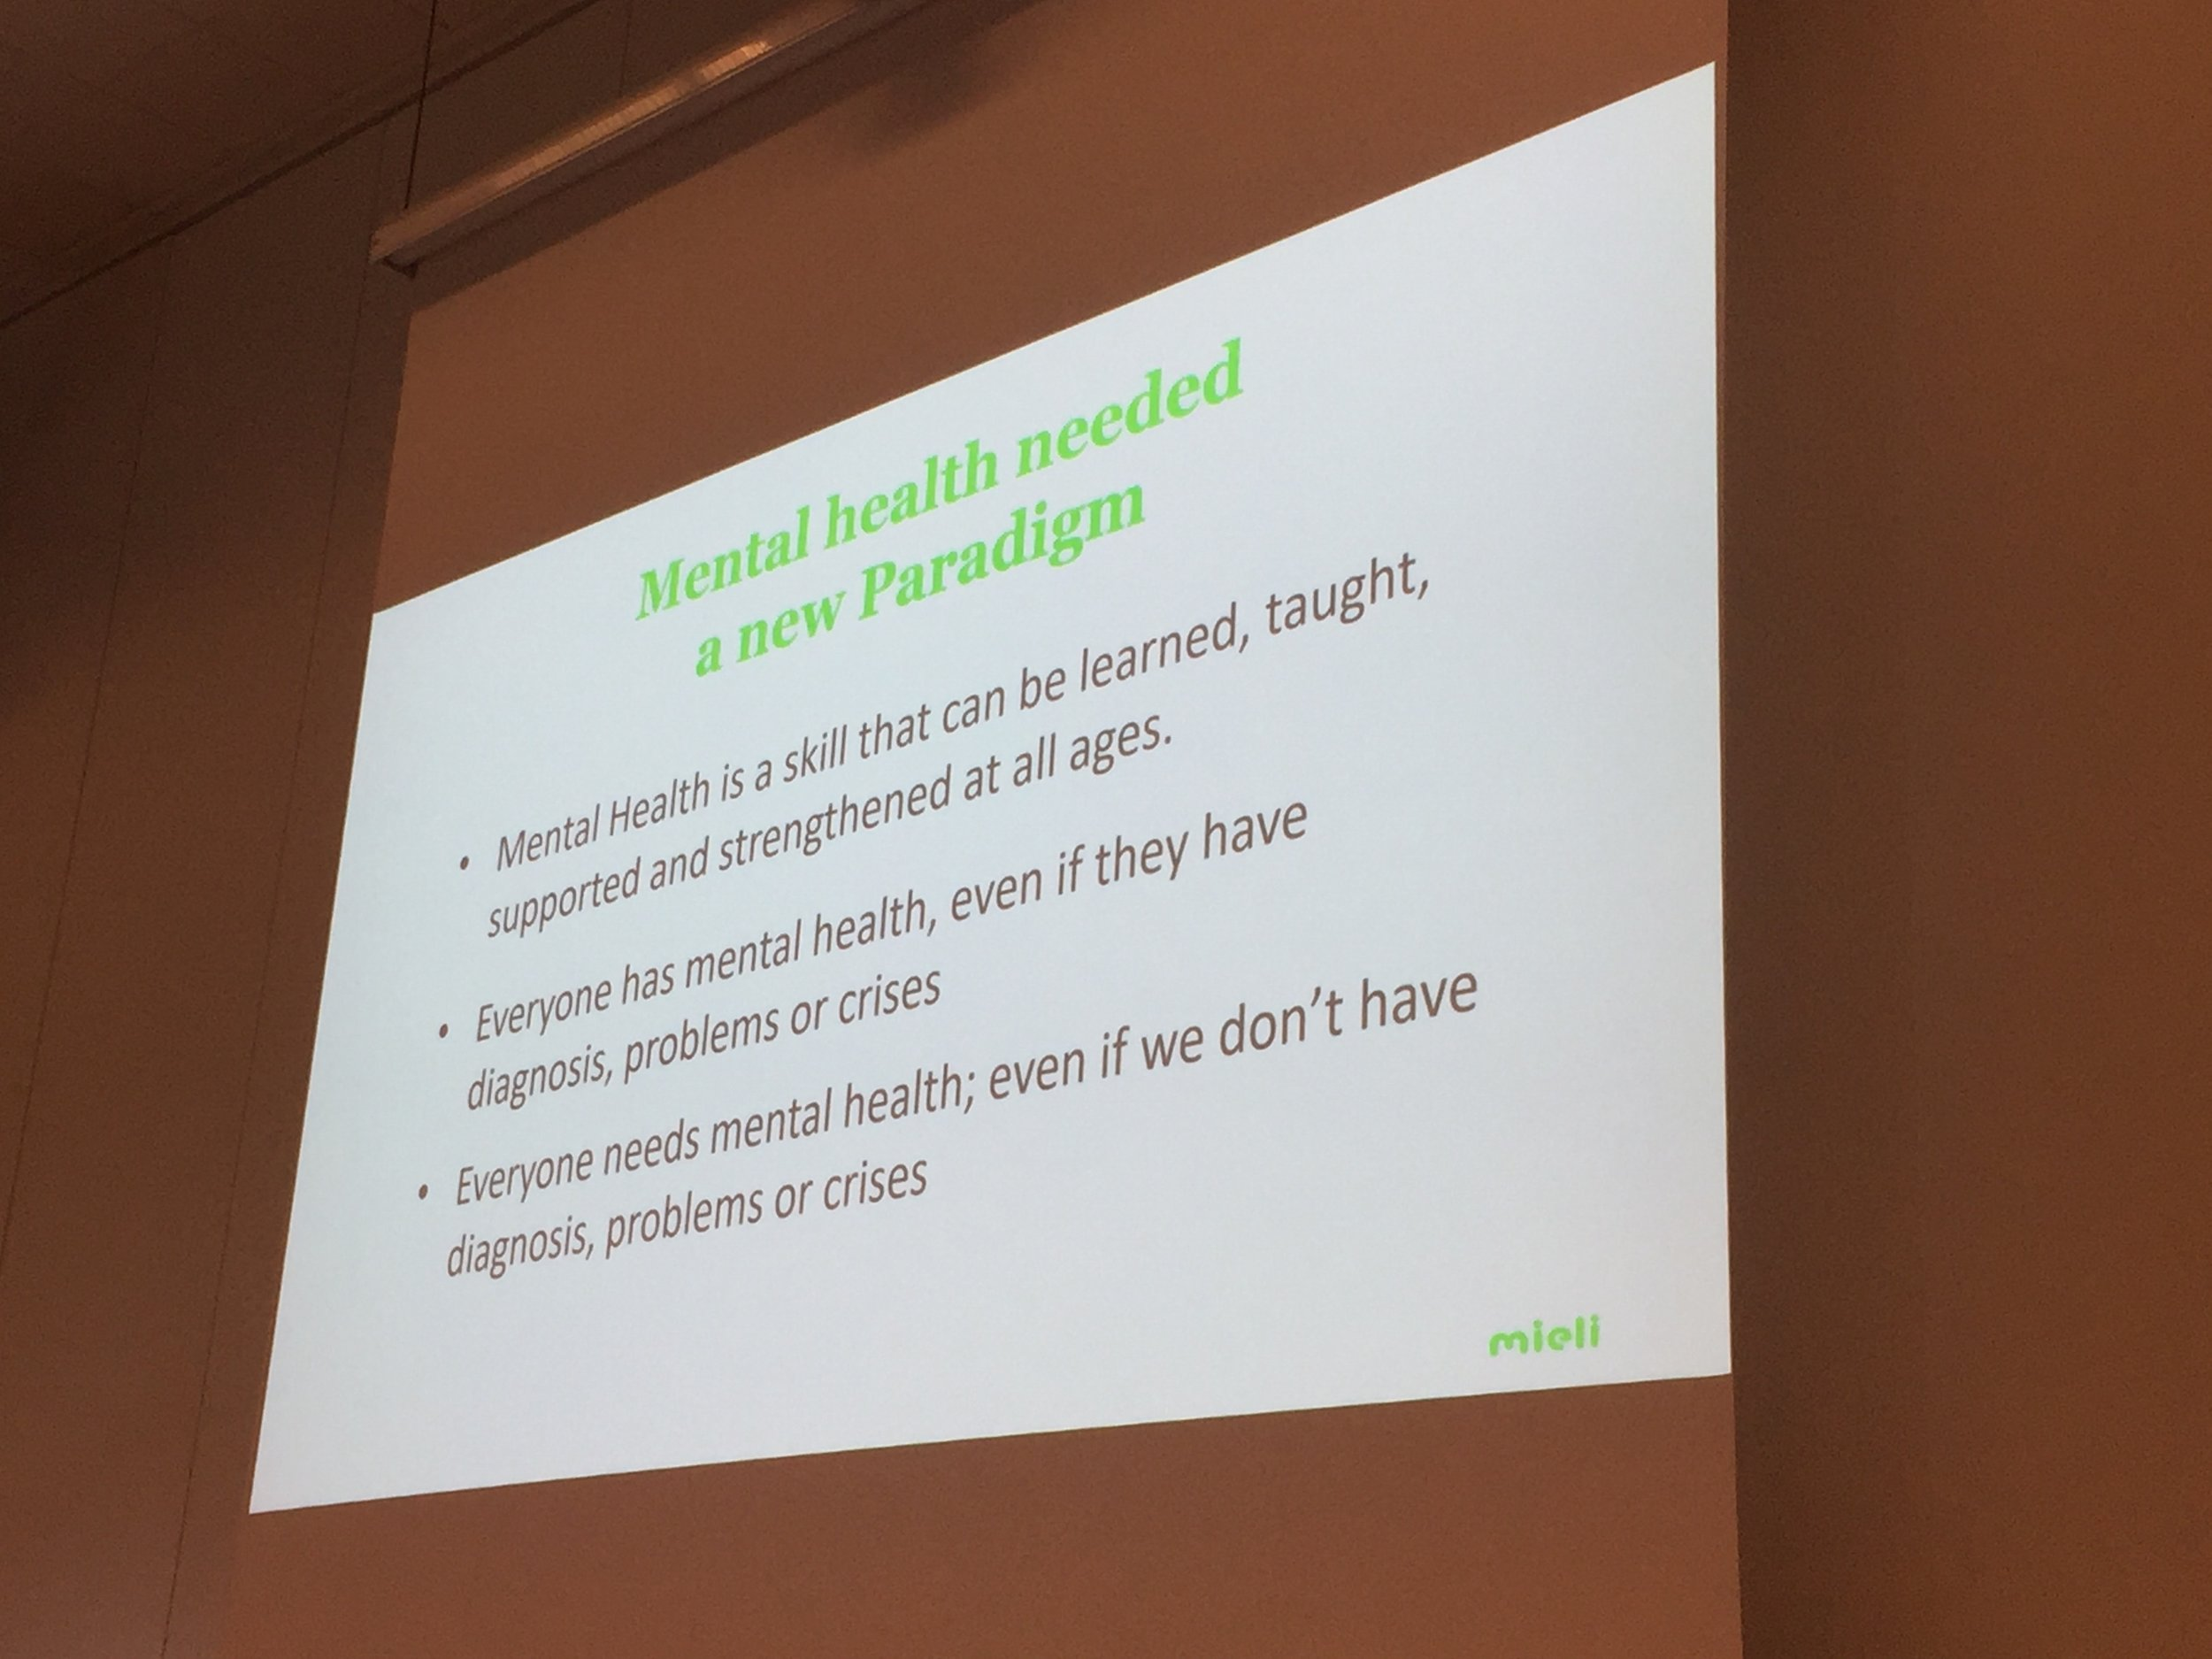 The Finnish Association for Mental Health